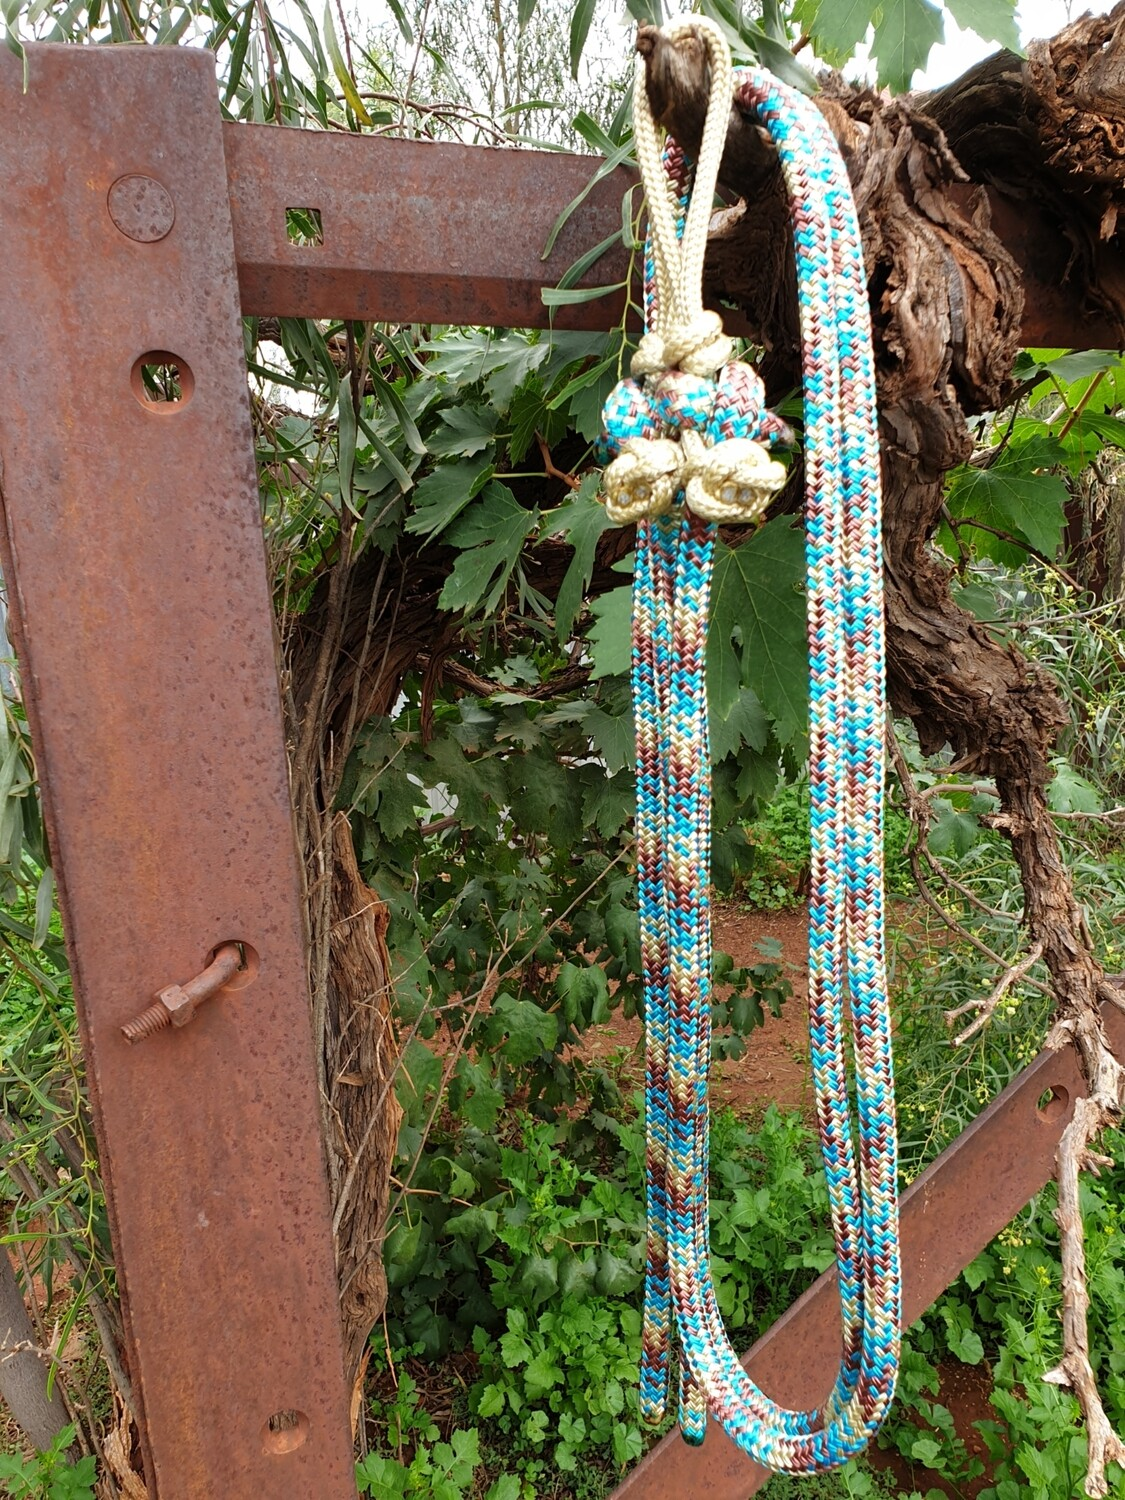 Aqua/Biege/Brown Rope Reins with Bit Connector